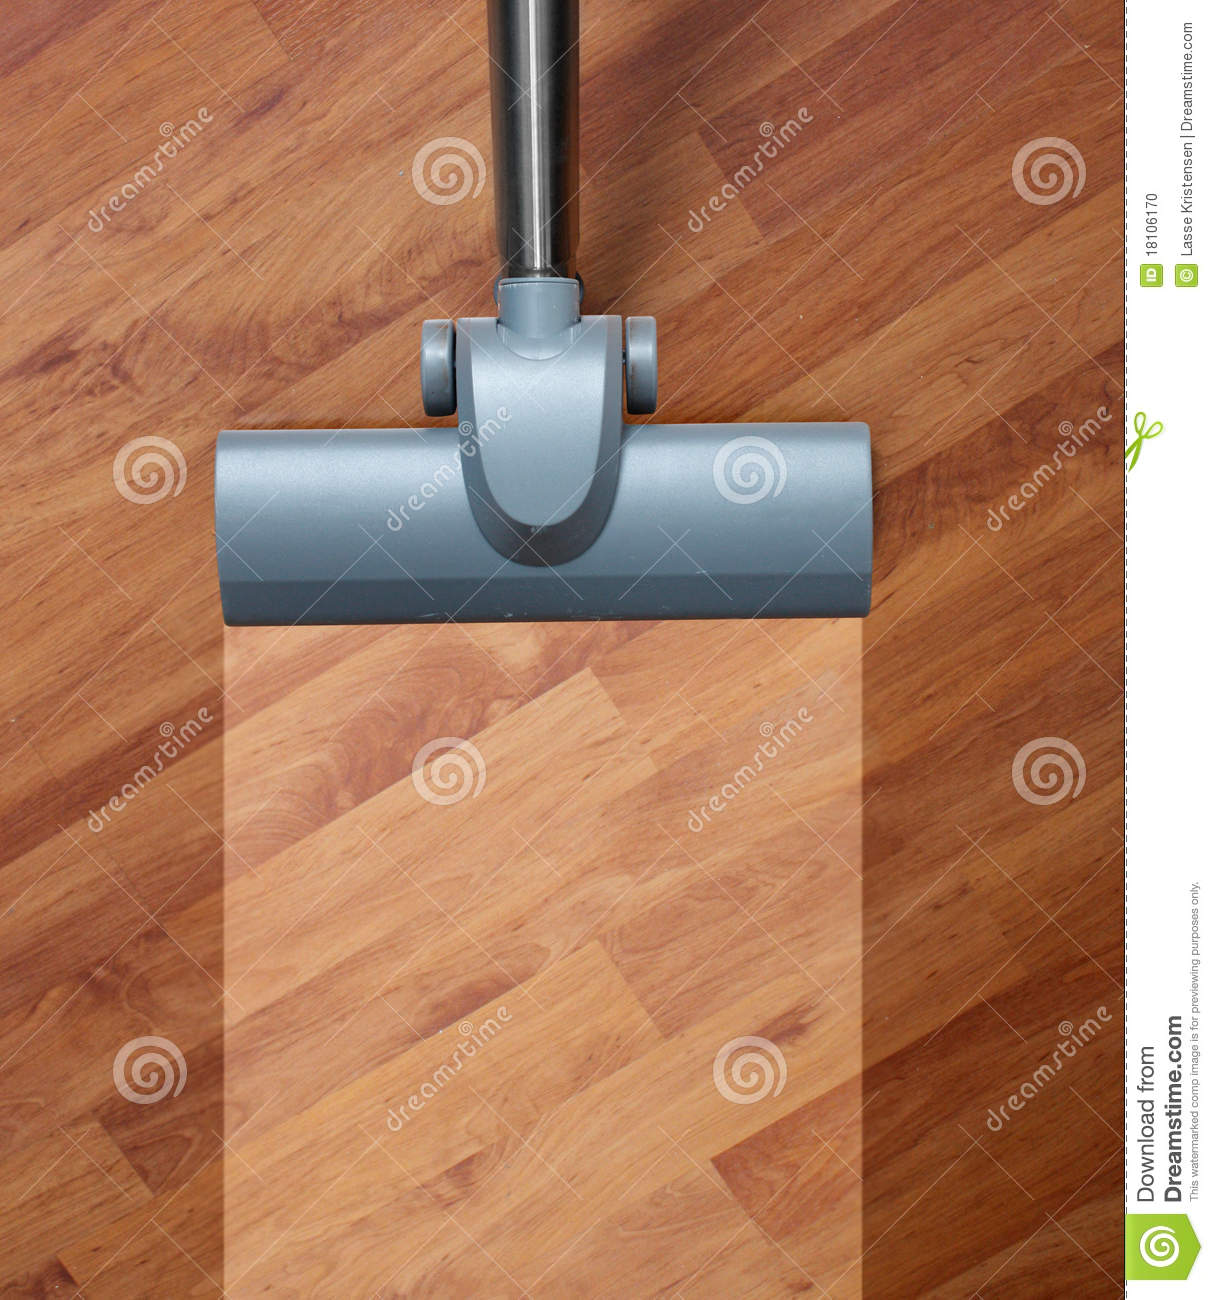 Cleaning Dirty Floor Stock Photo Image Of Cleanliness